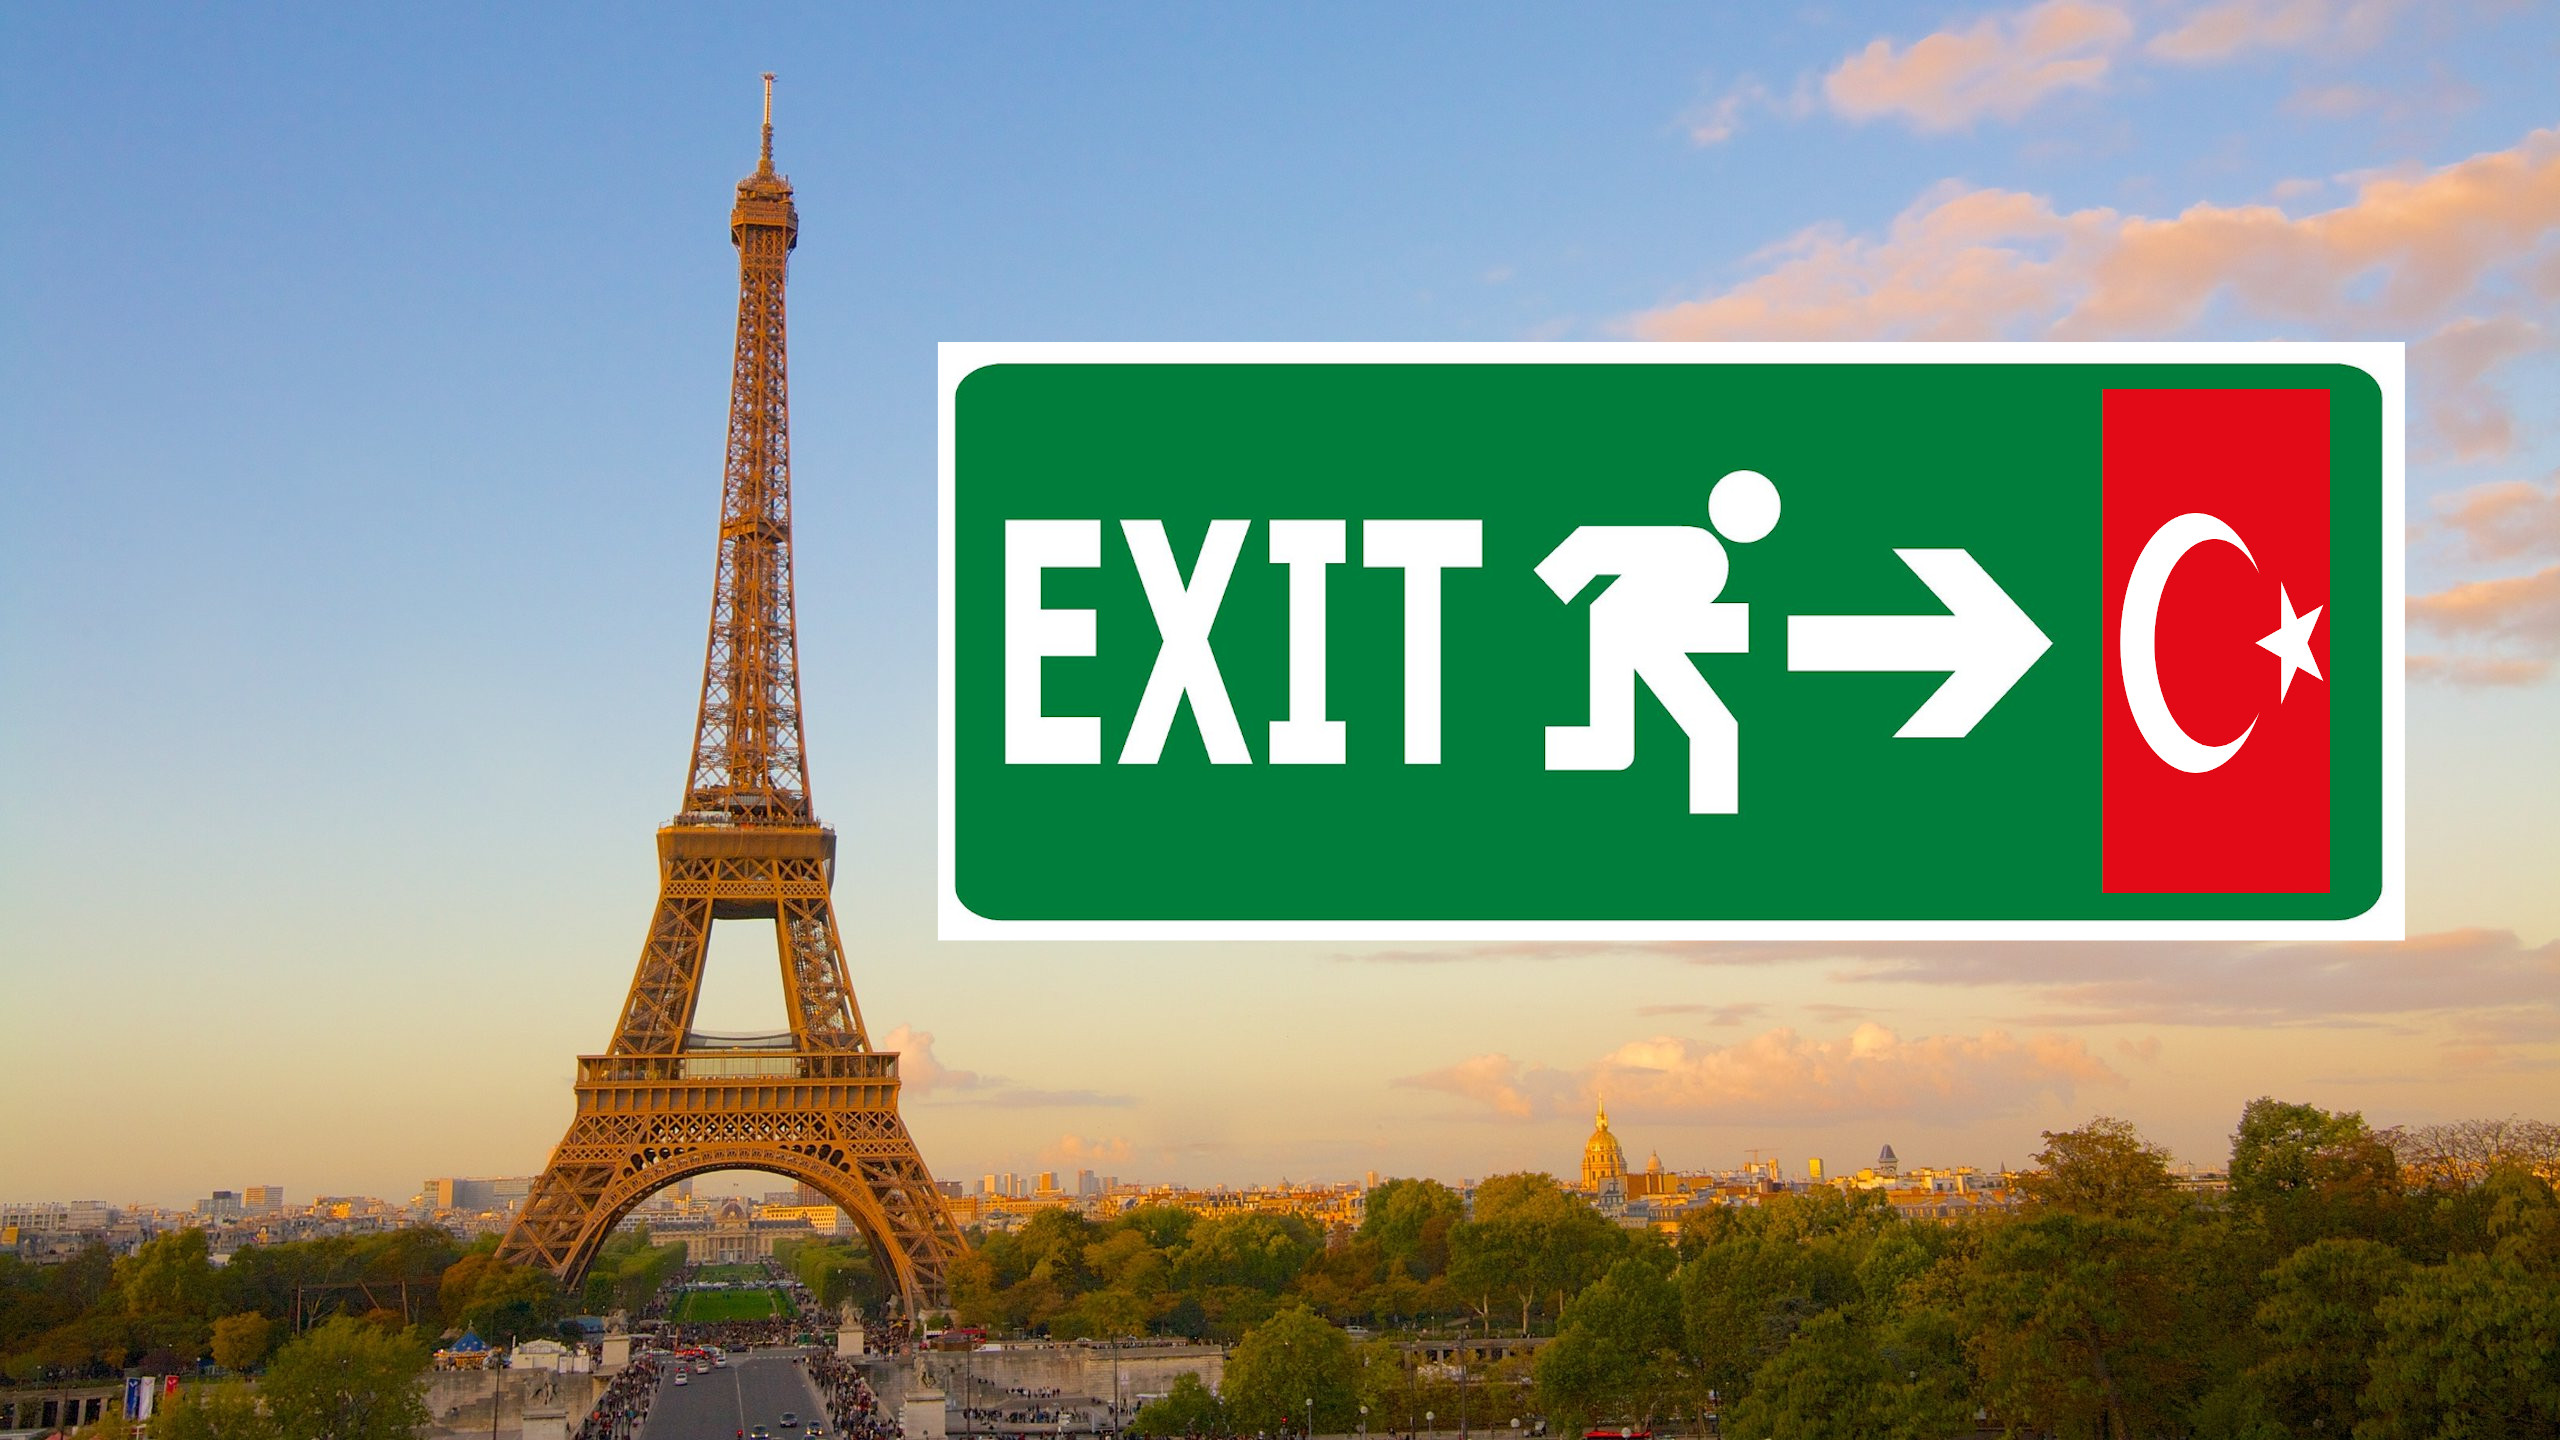 Investors are planning on an Eurozone exit.